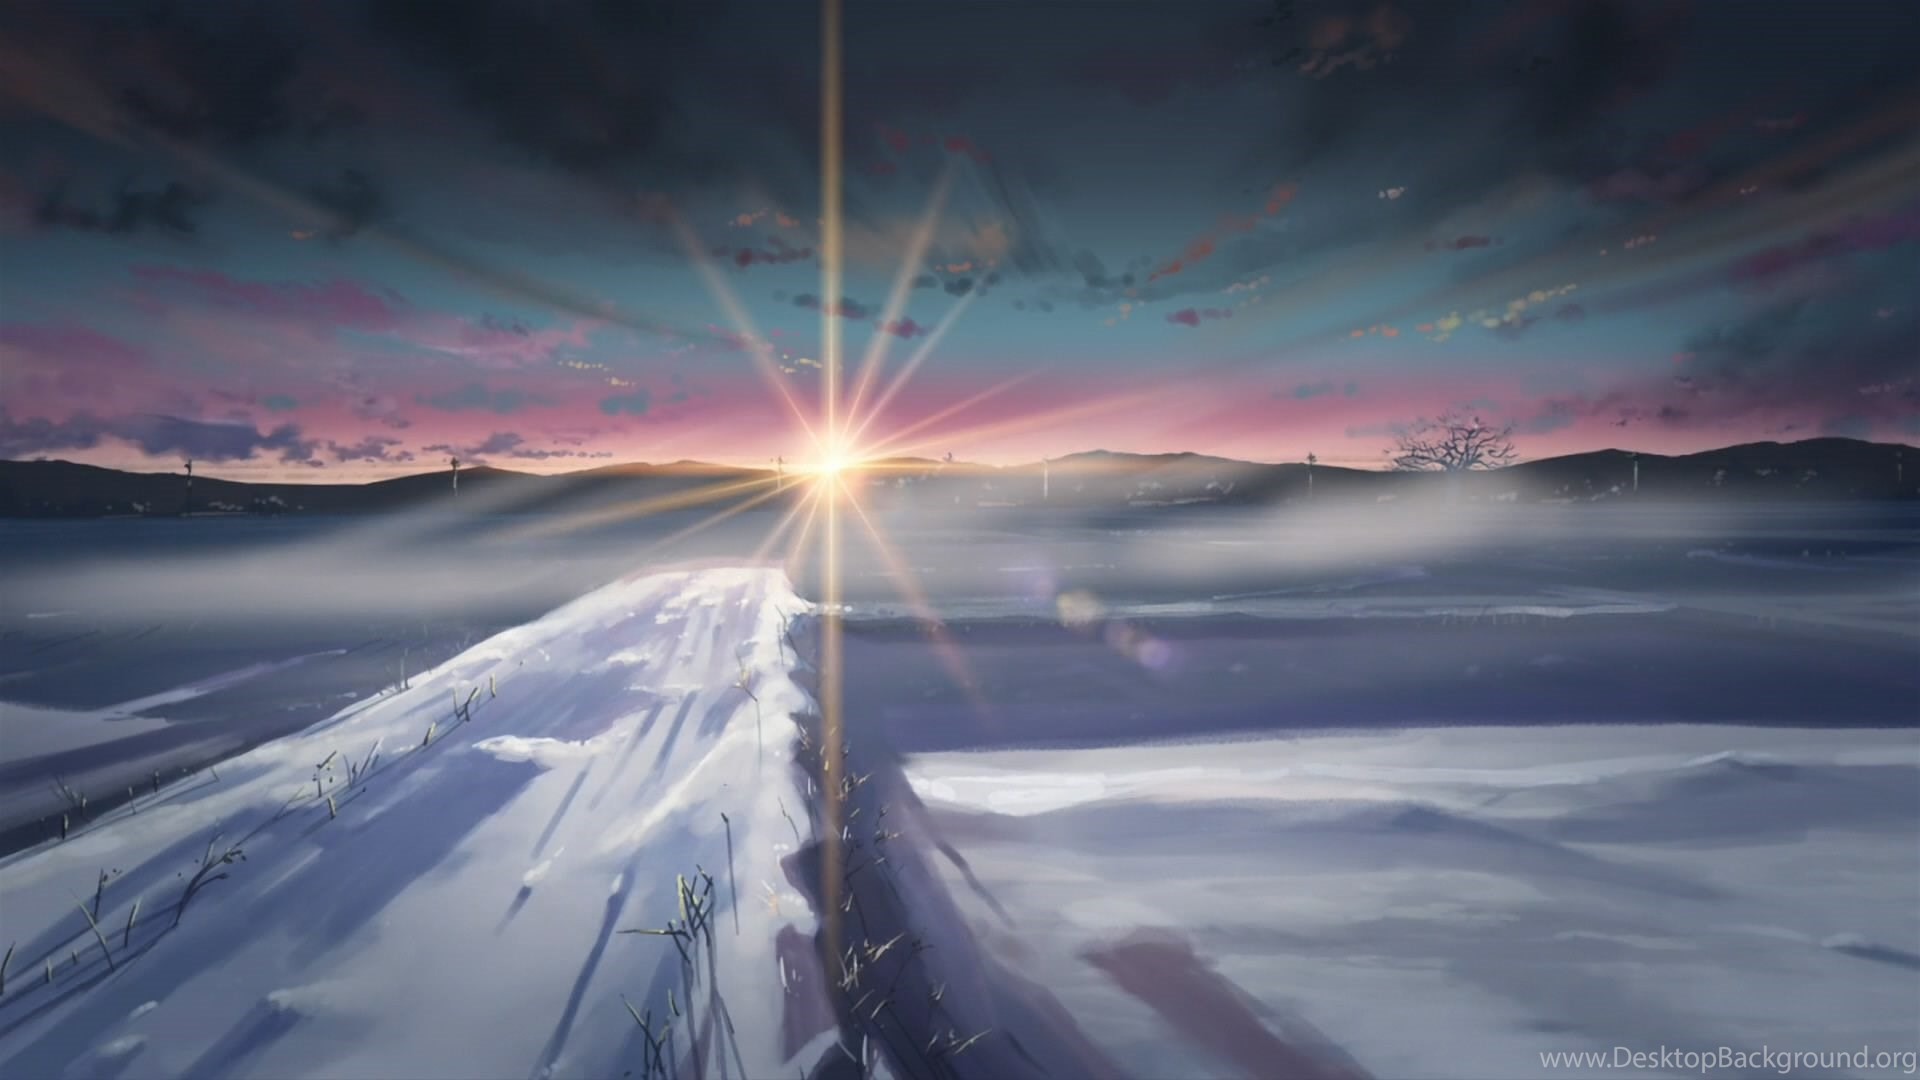 Makoto Shinkai 5 Centimeters Per Second Wallpapers Desktop Background